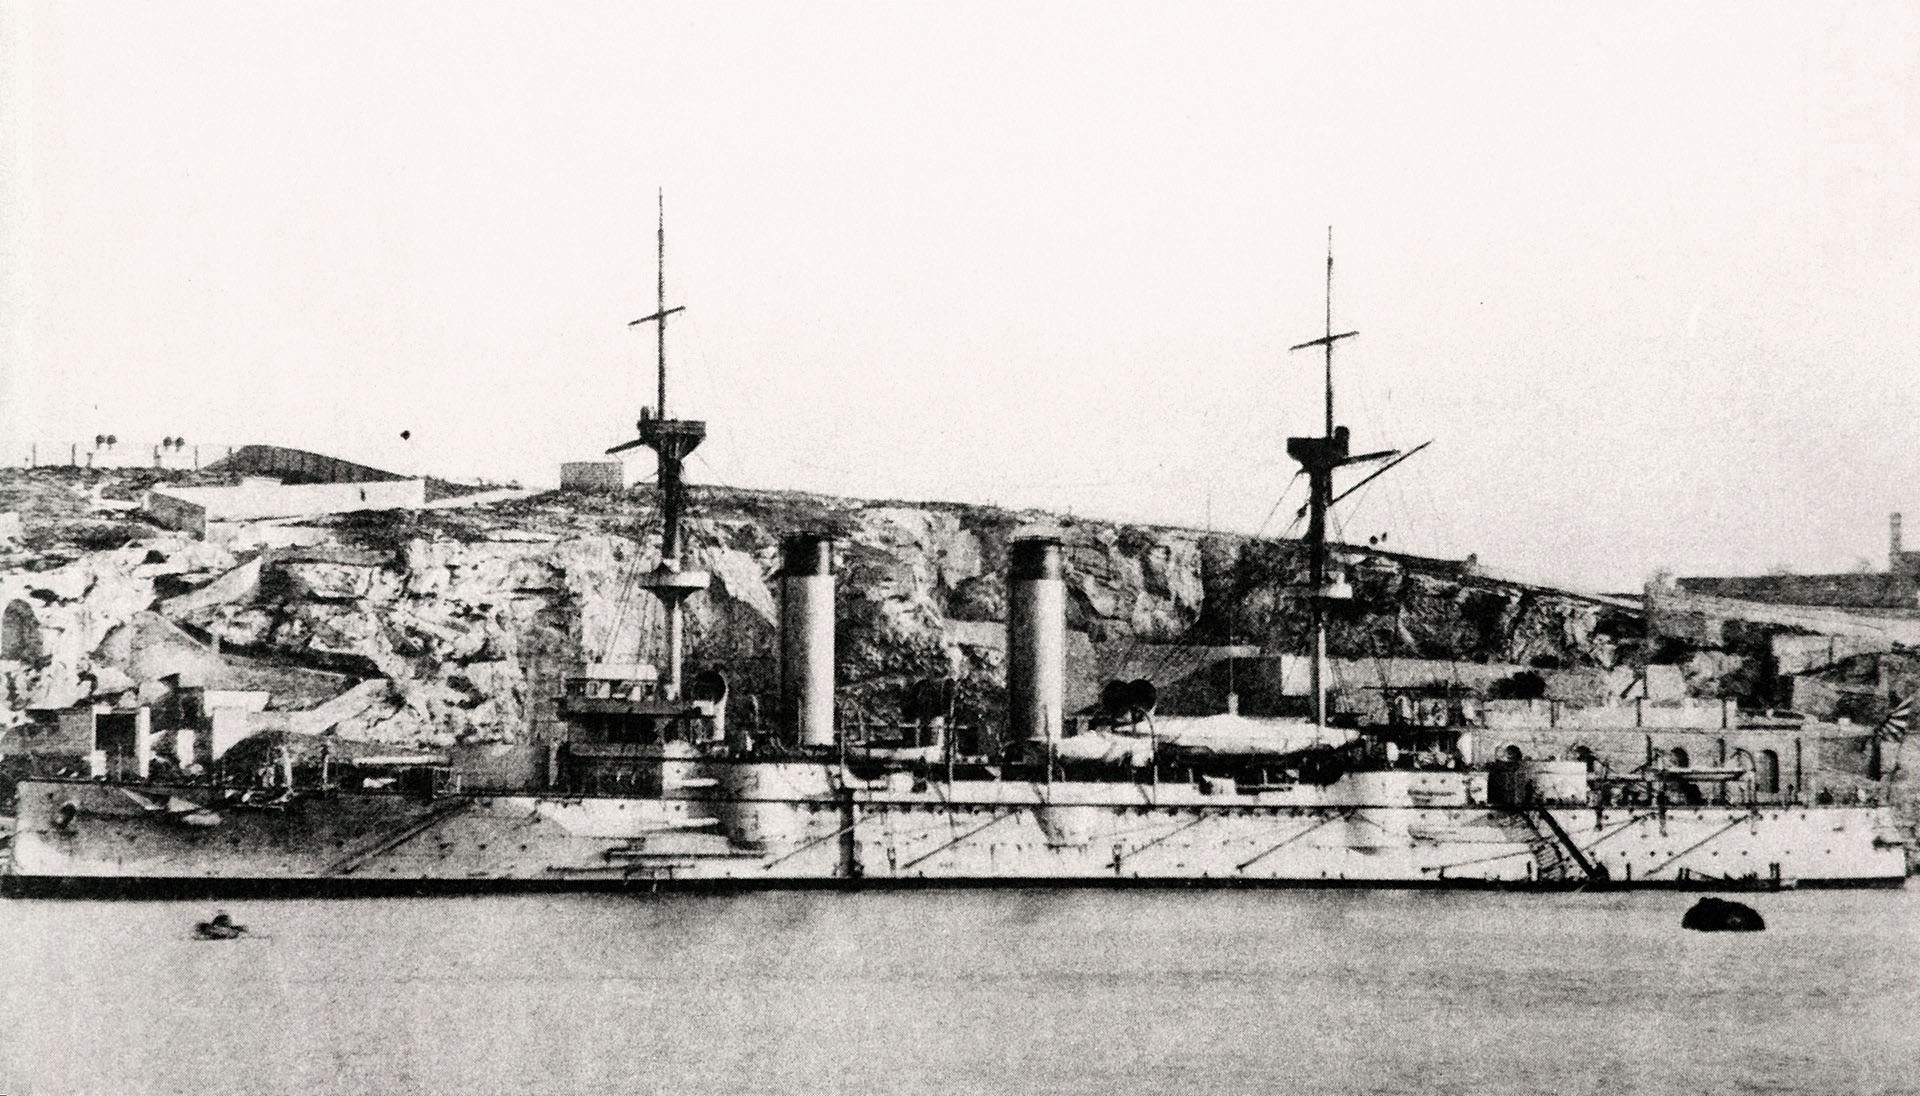 Japan's baptism of fire: World War I put country on a collision course with West